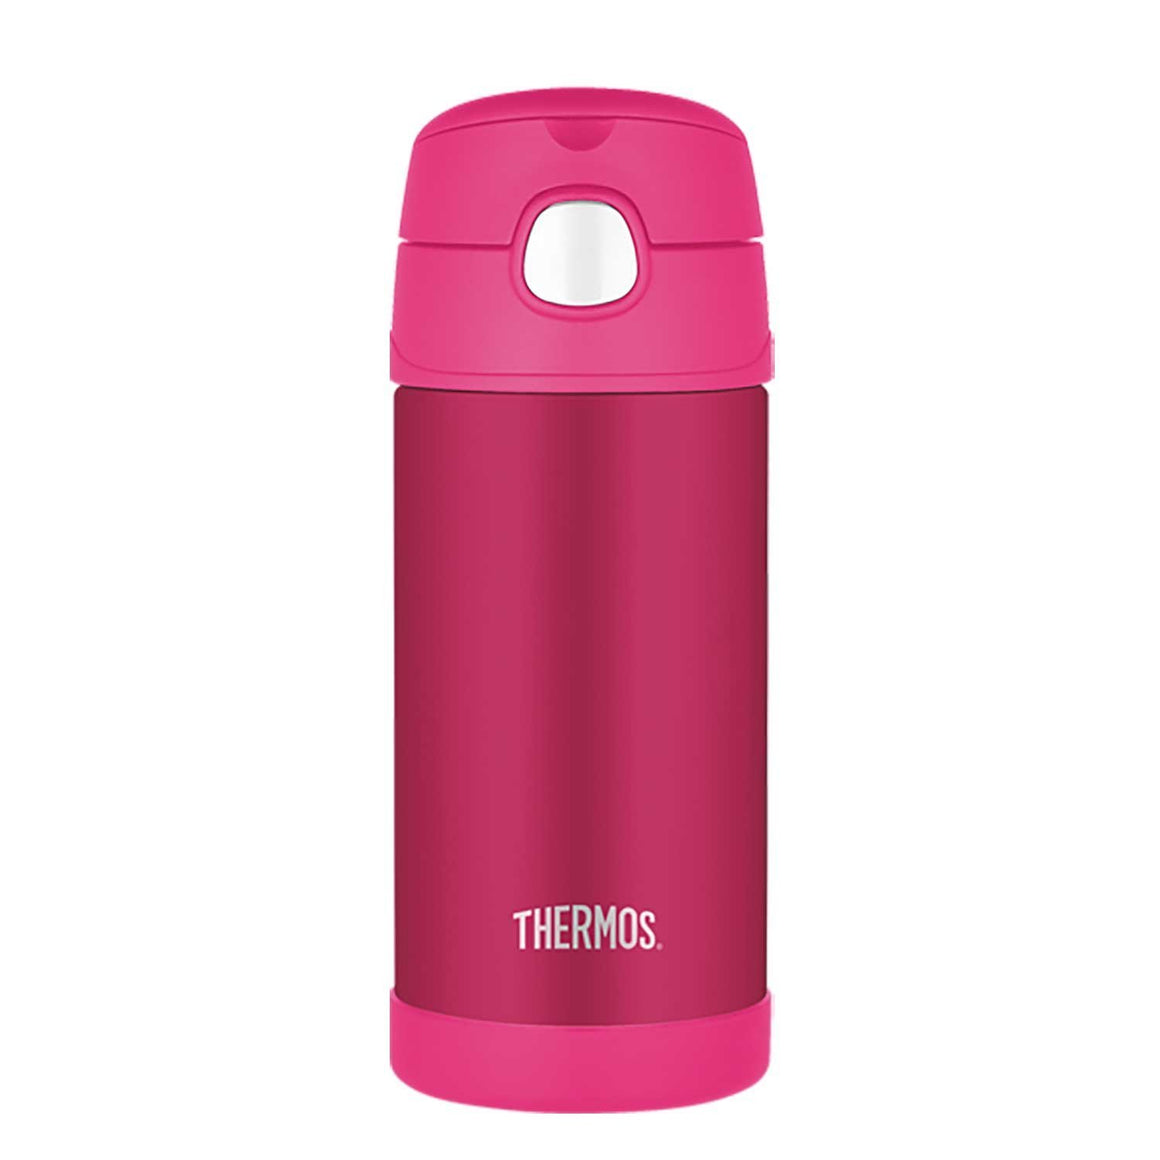 Thermos Funtainer Stainless Steel Vacuum Insulated Bottle 355ml Pink - stuff-n-things